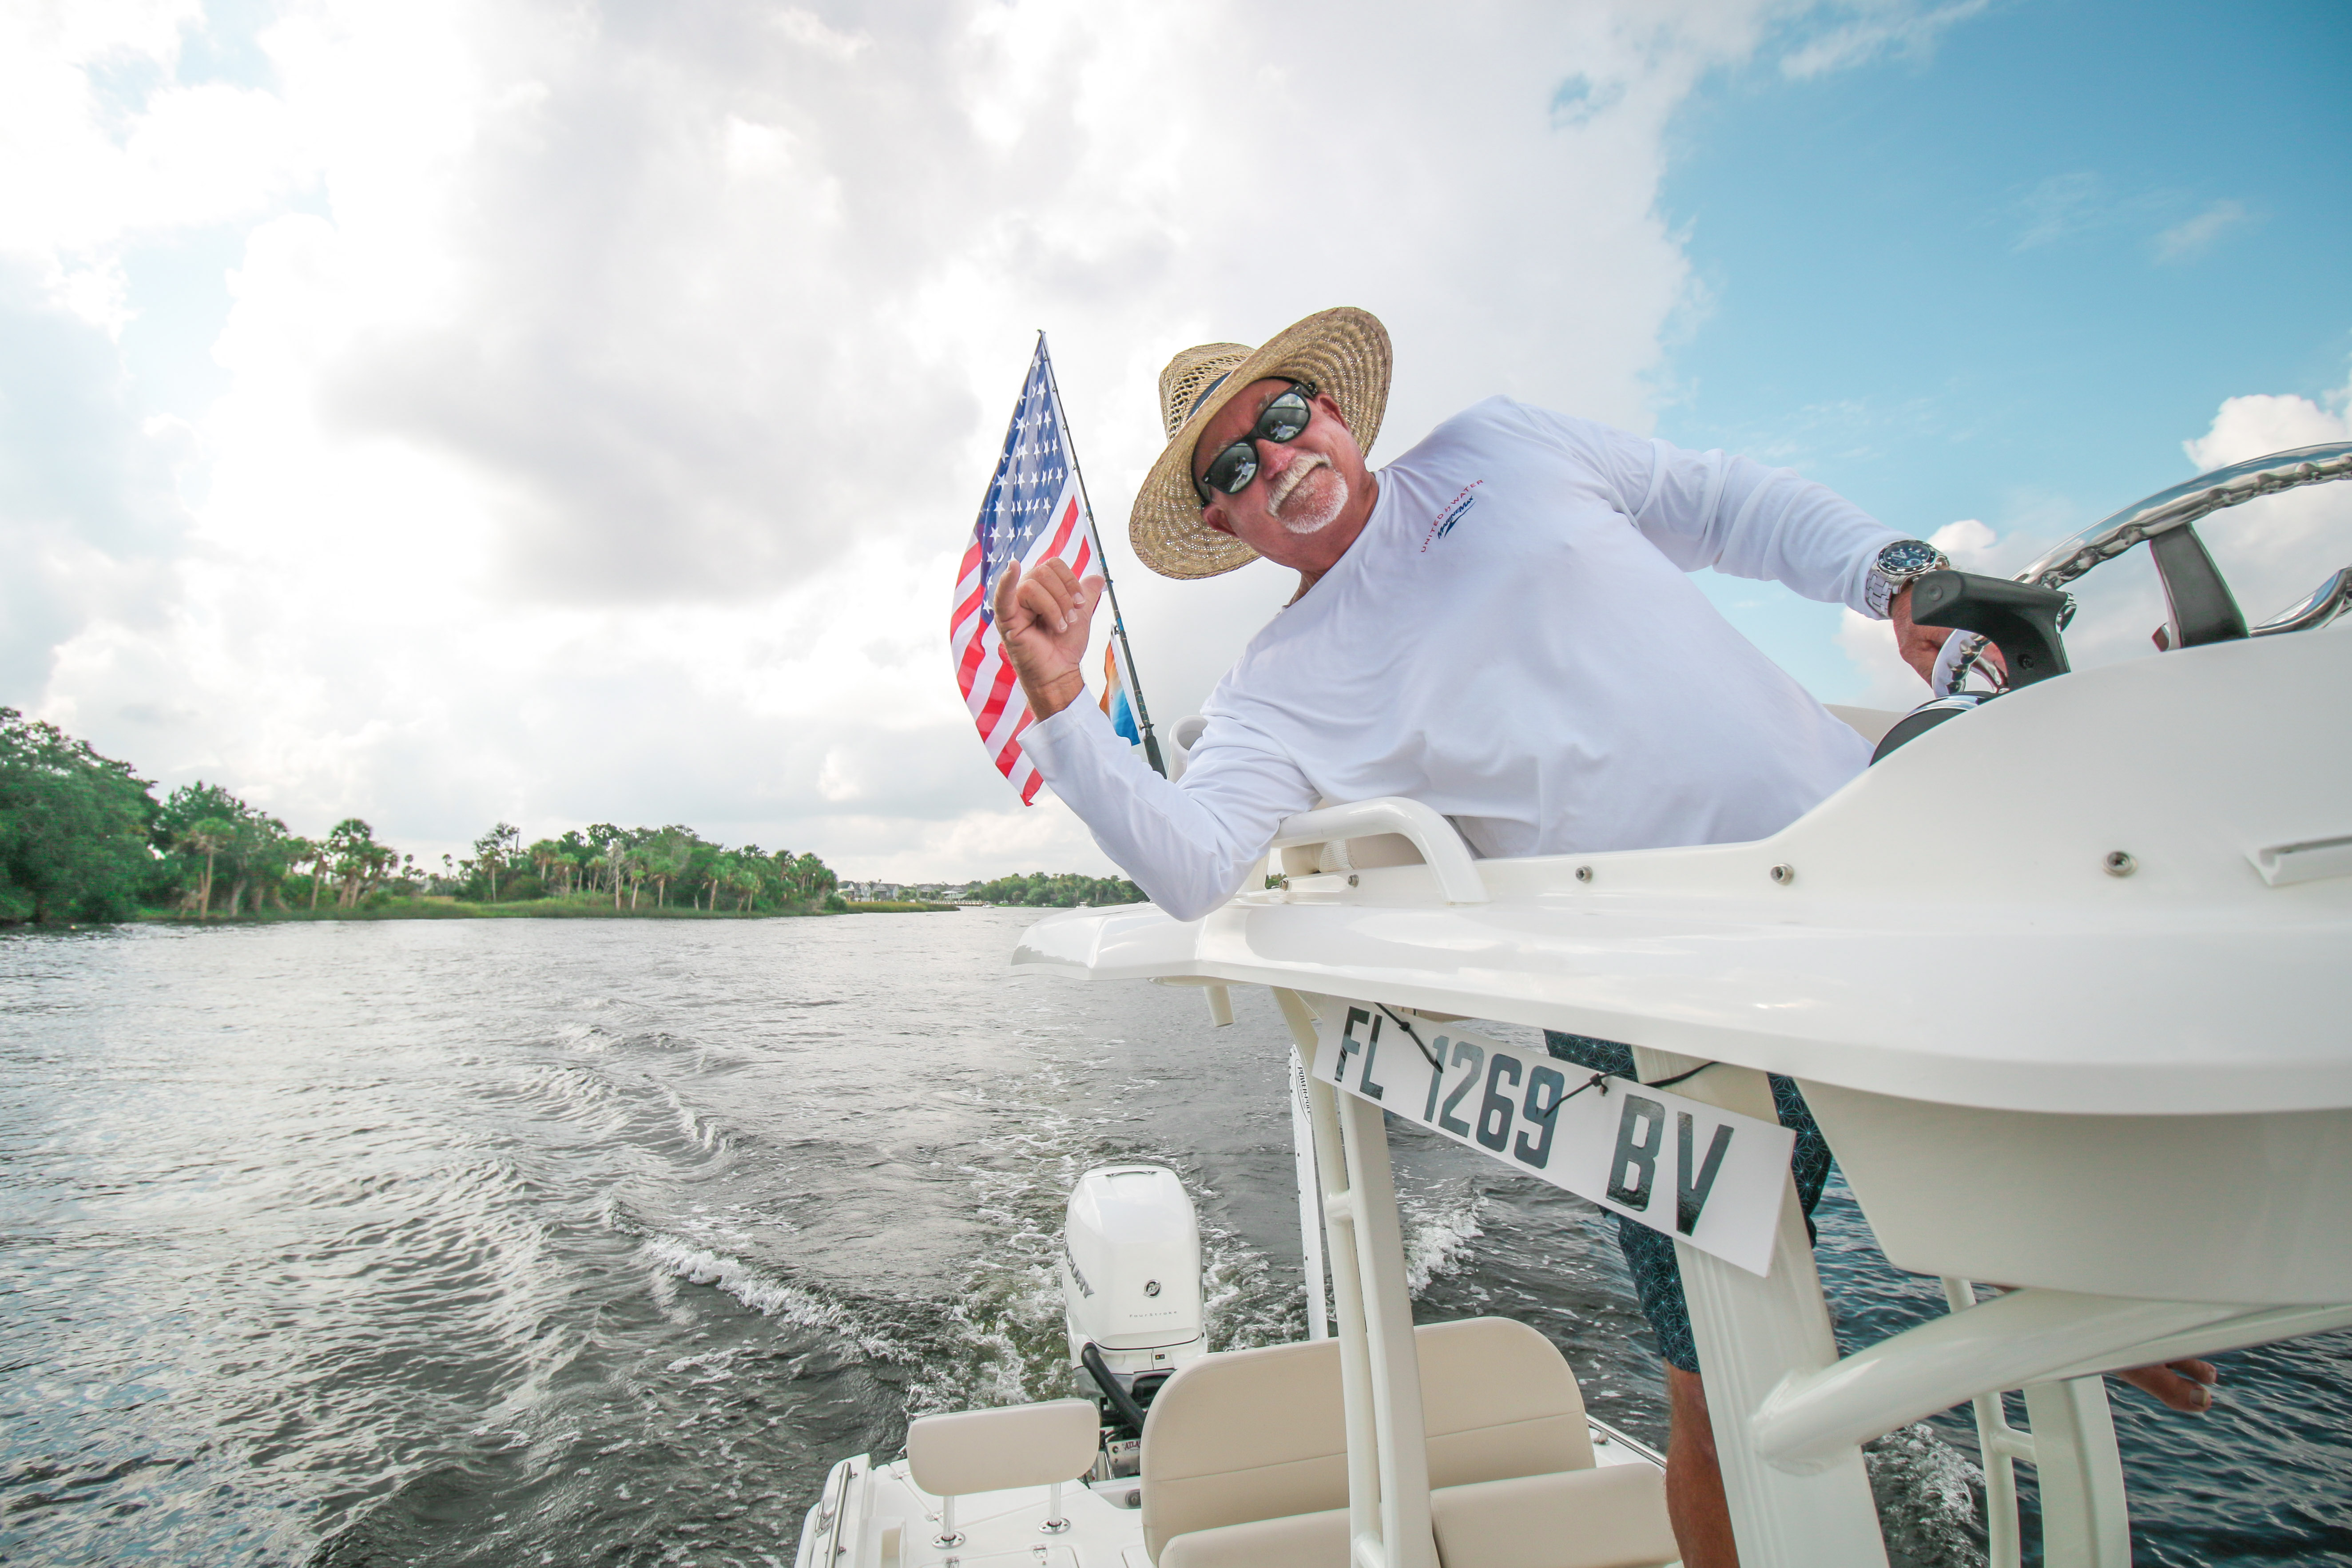 Captain Keith of MarineMax Clearwater